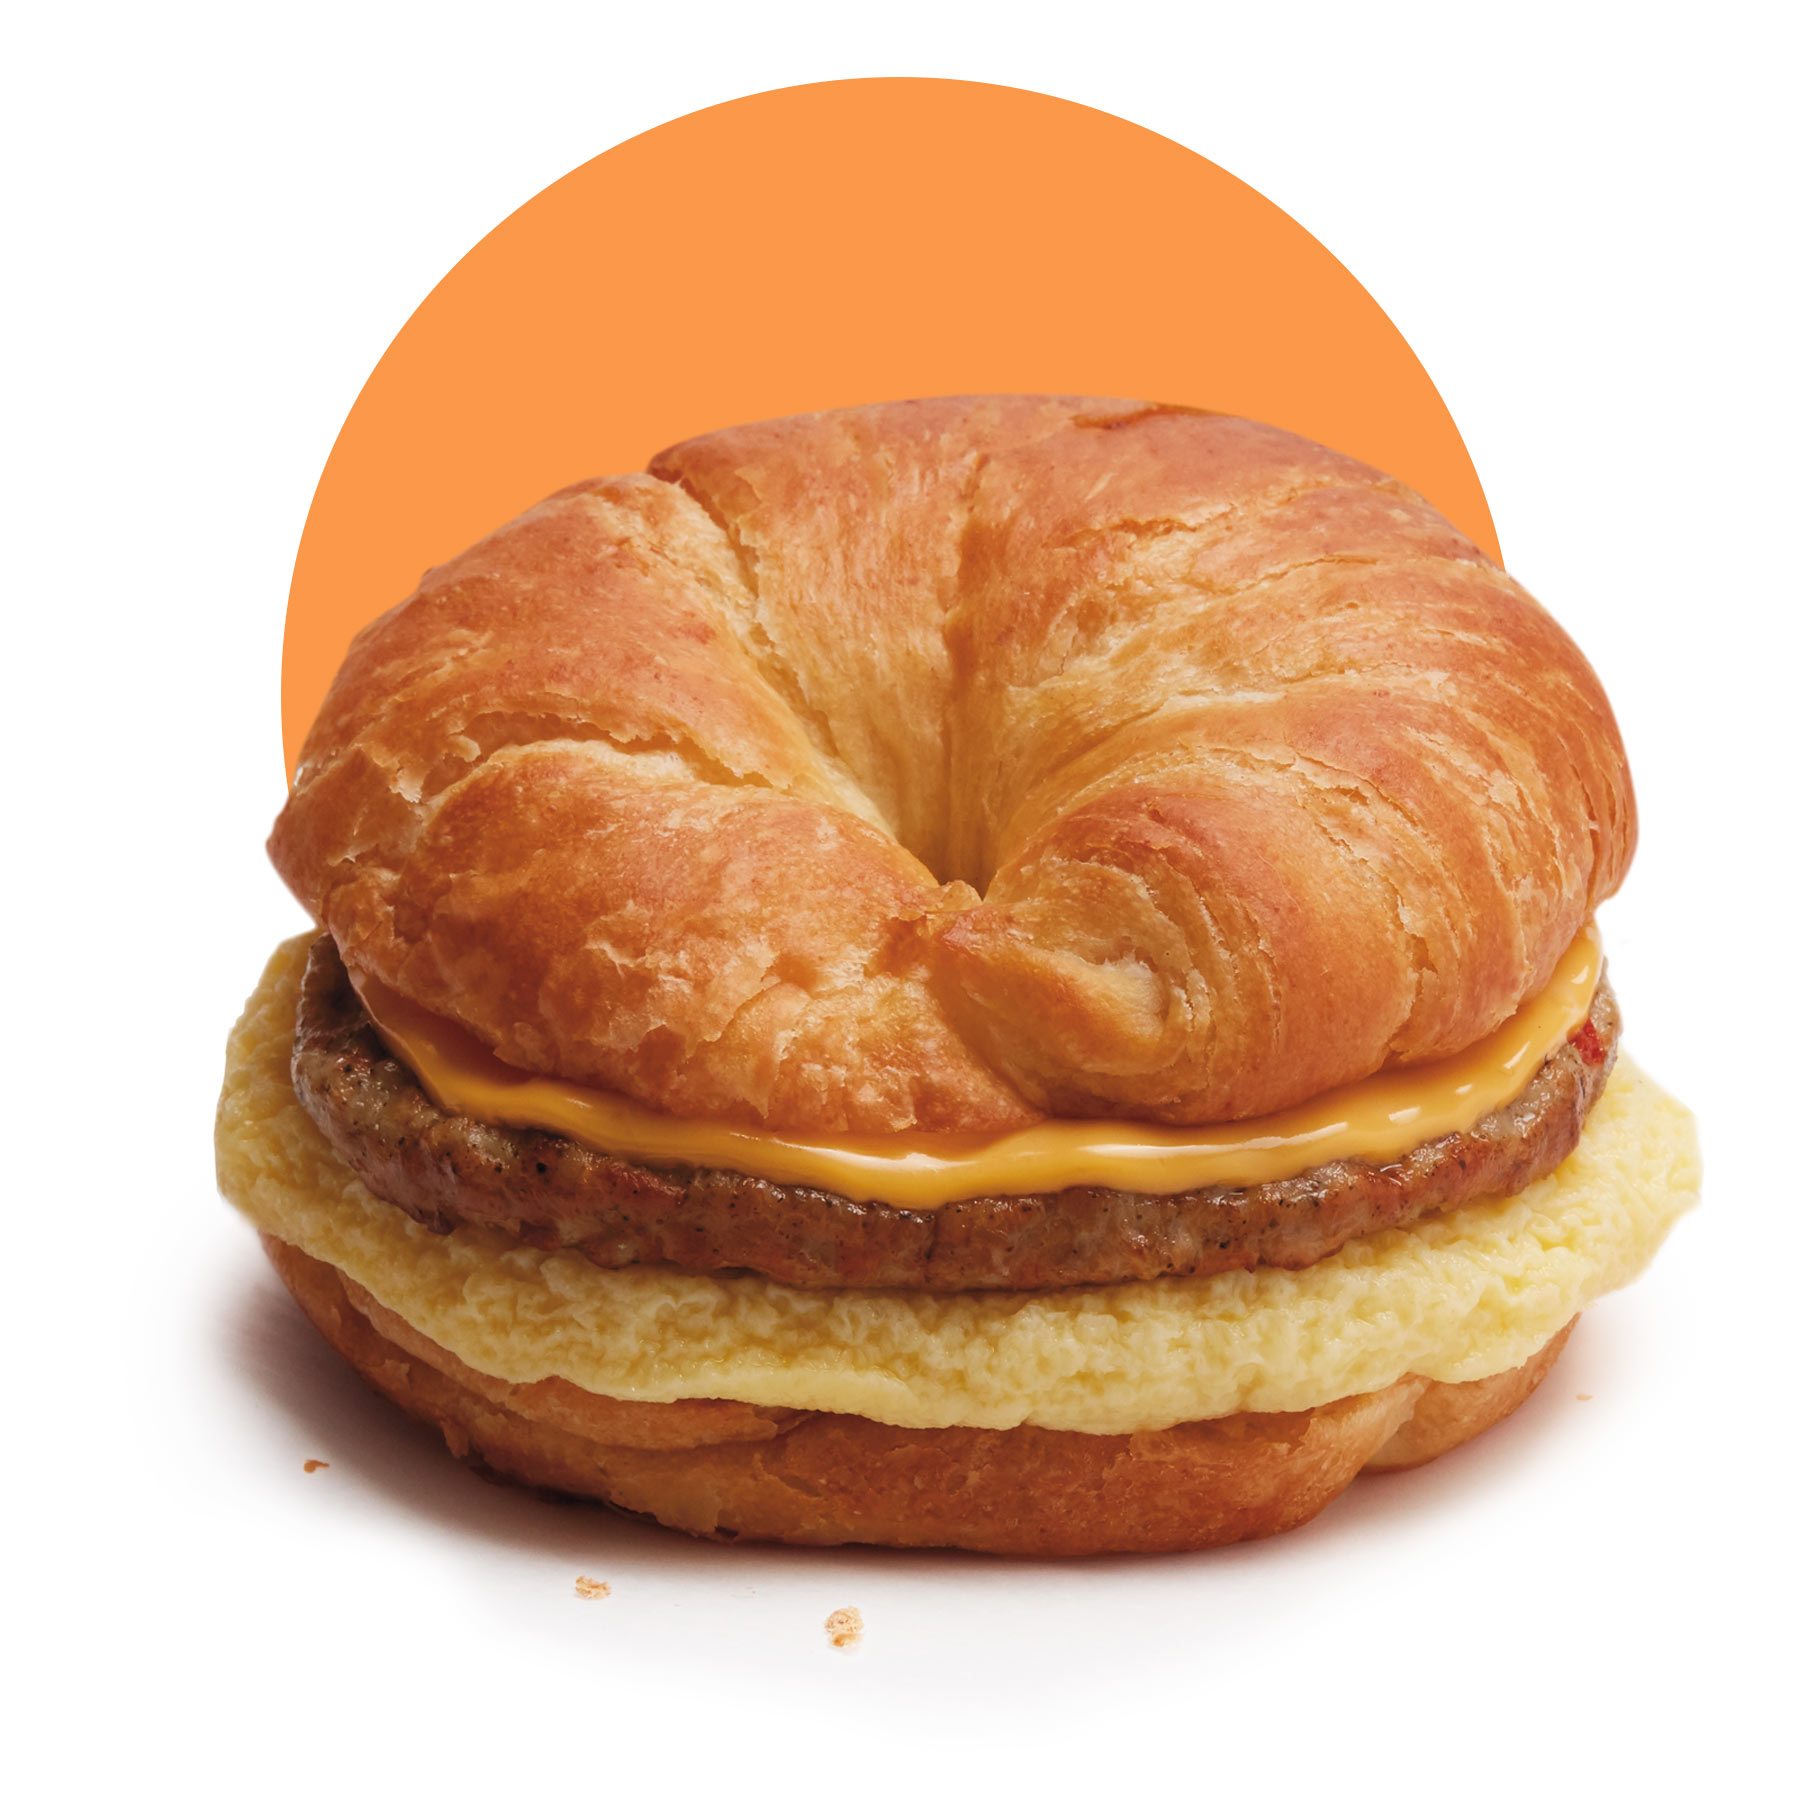 7-Eleven-Breakfast-Croissant-Sausage-Egg-Cheese.jpg